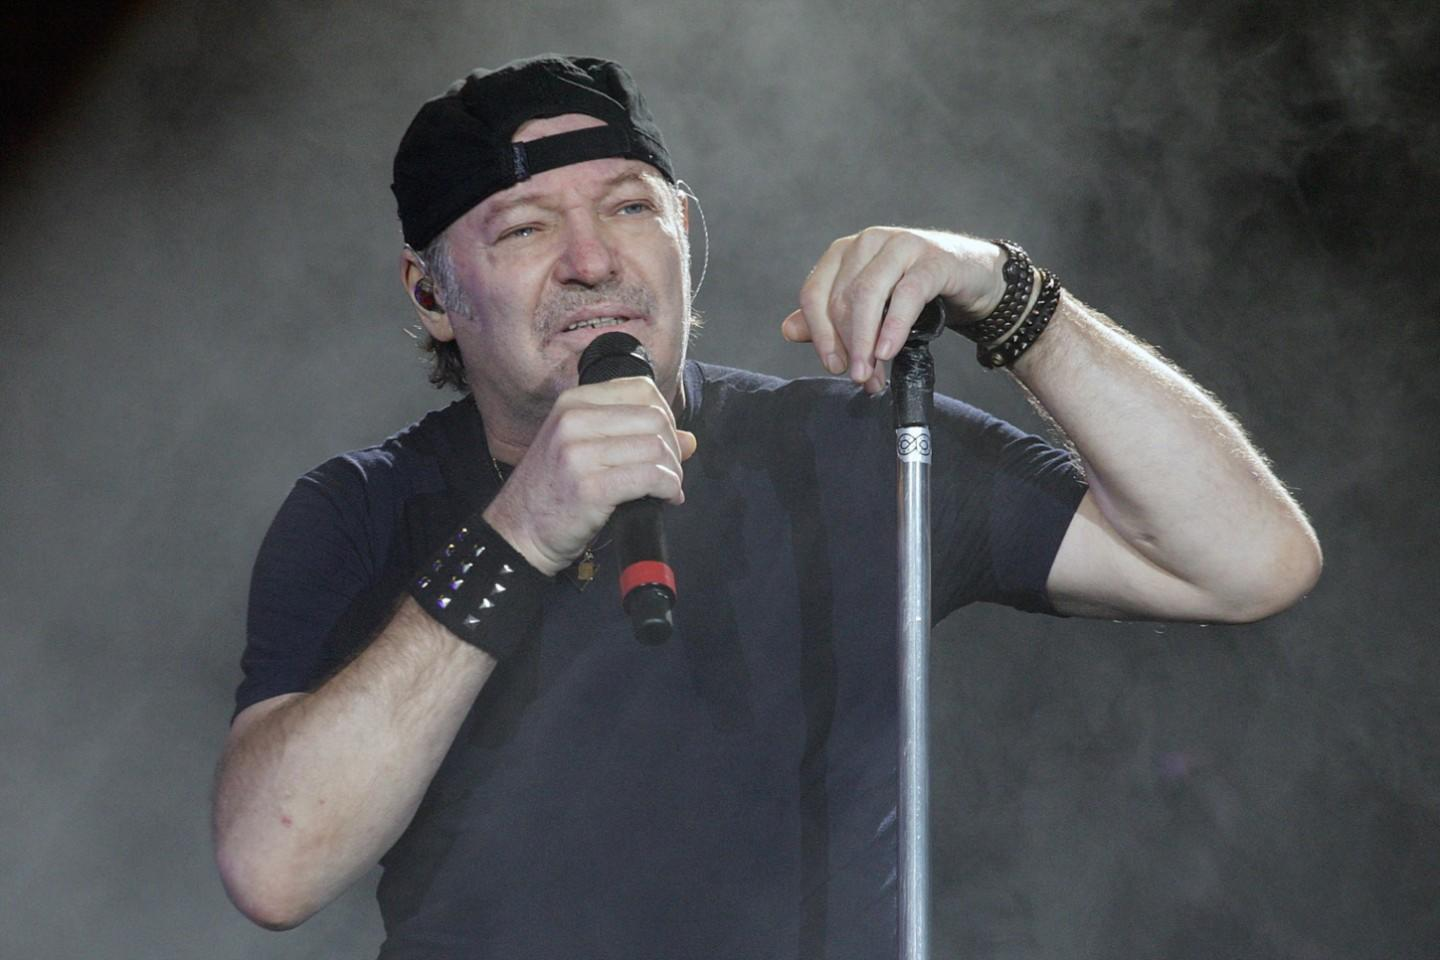 Vasco A Torino Vasco Rossi Tickets Vasco Rossi Tour Dates And Concert Tickets